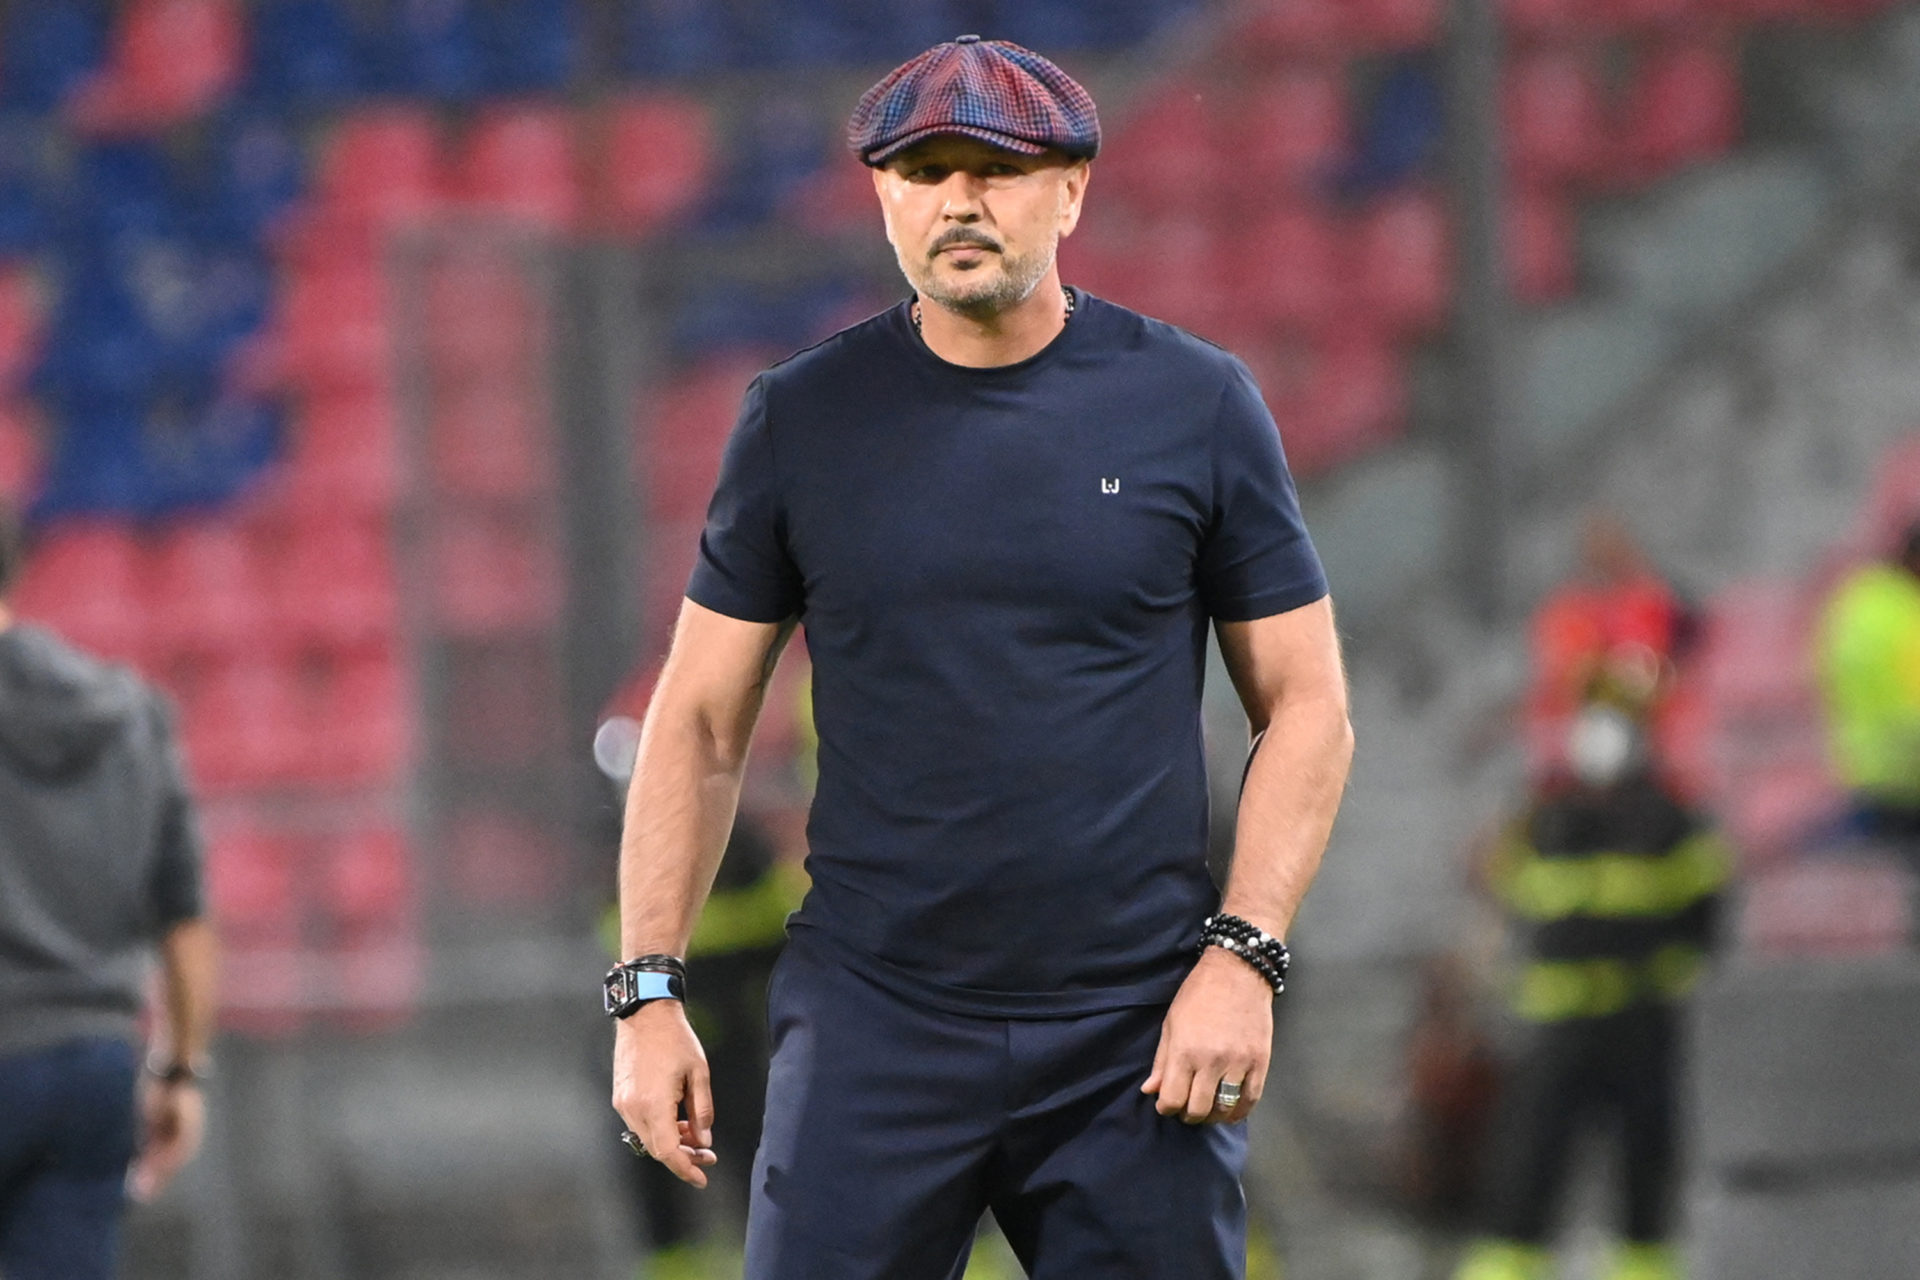 Radio Casteldebole abstract – The purpose in Bologna two days earlier than the match in Udine